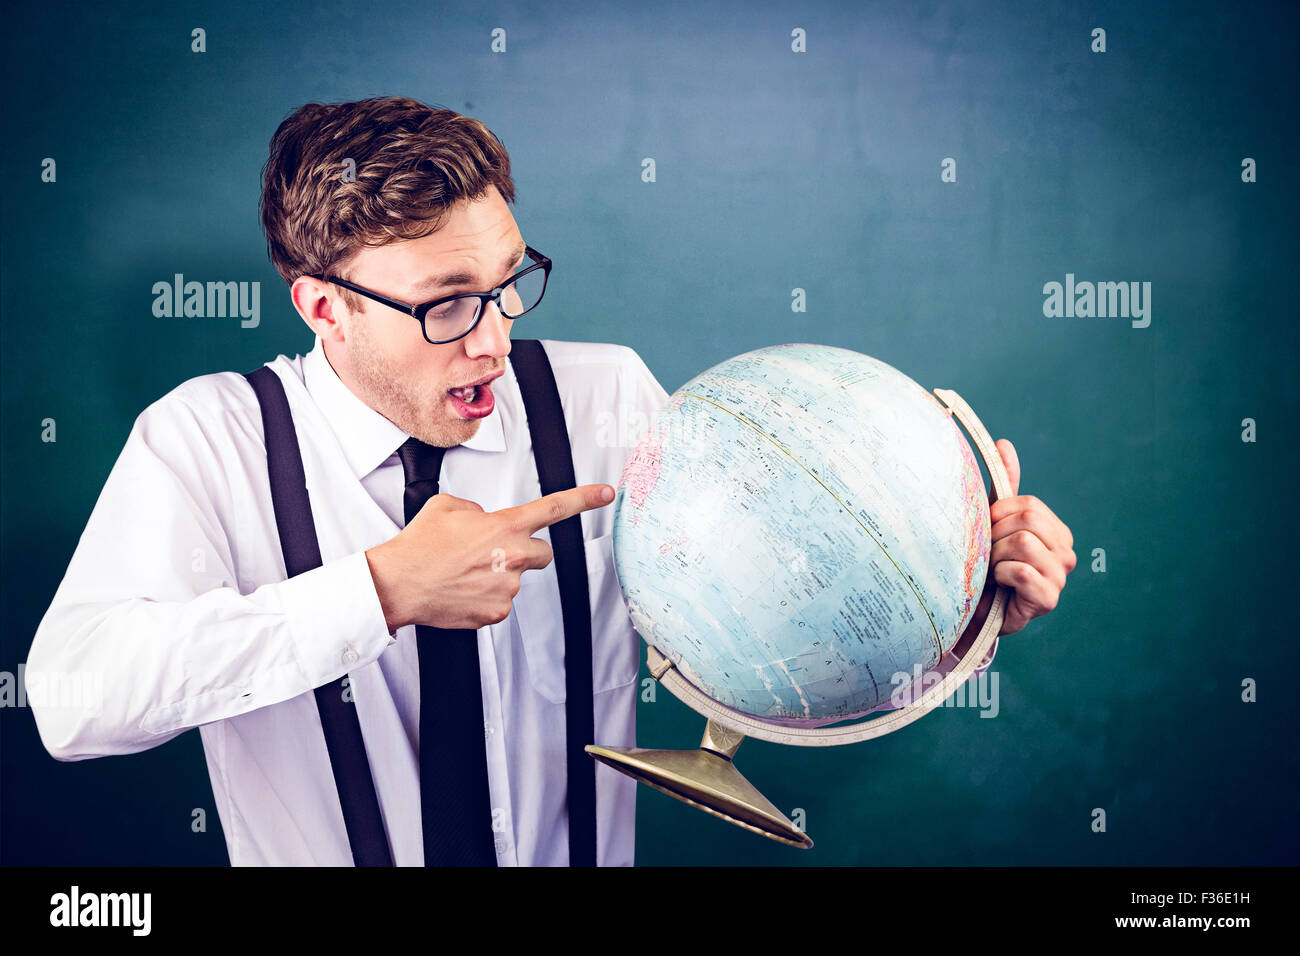 Composite image of geeky businessman pointing to globe - Stock Image